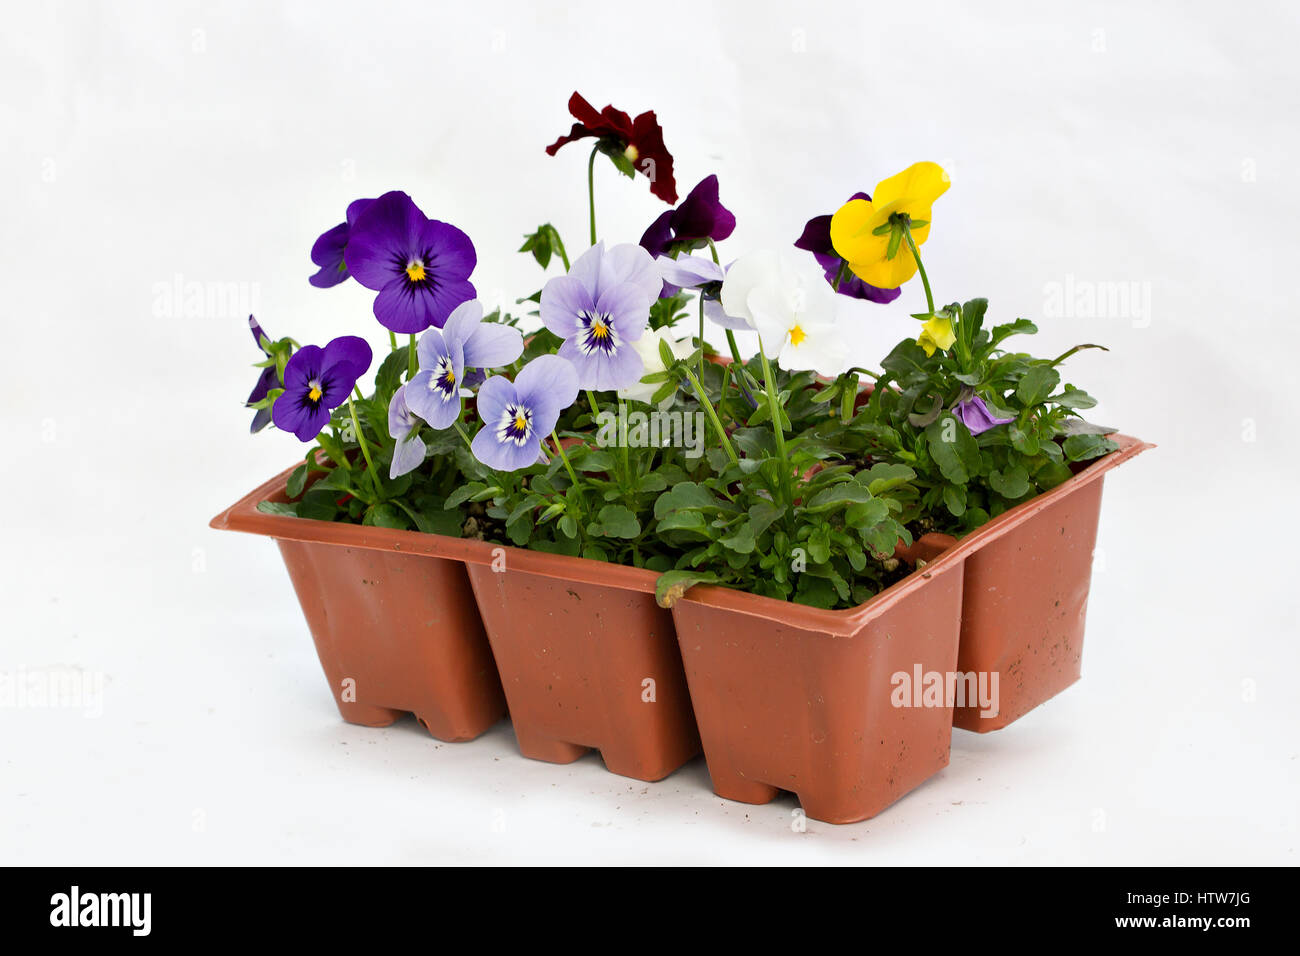 Jumbo Pack Colorful Annual Flowers Stock Photos Jumbo Pack